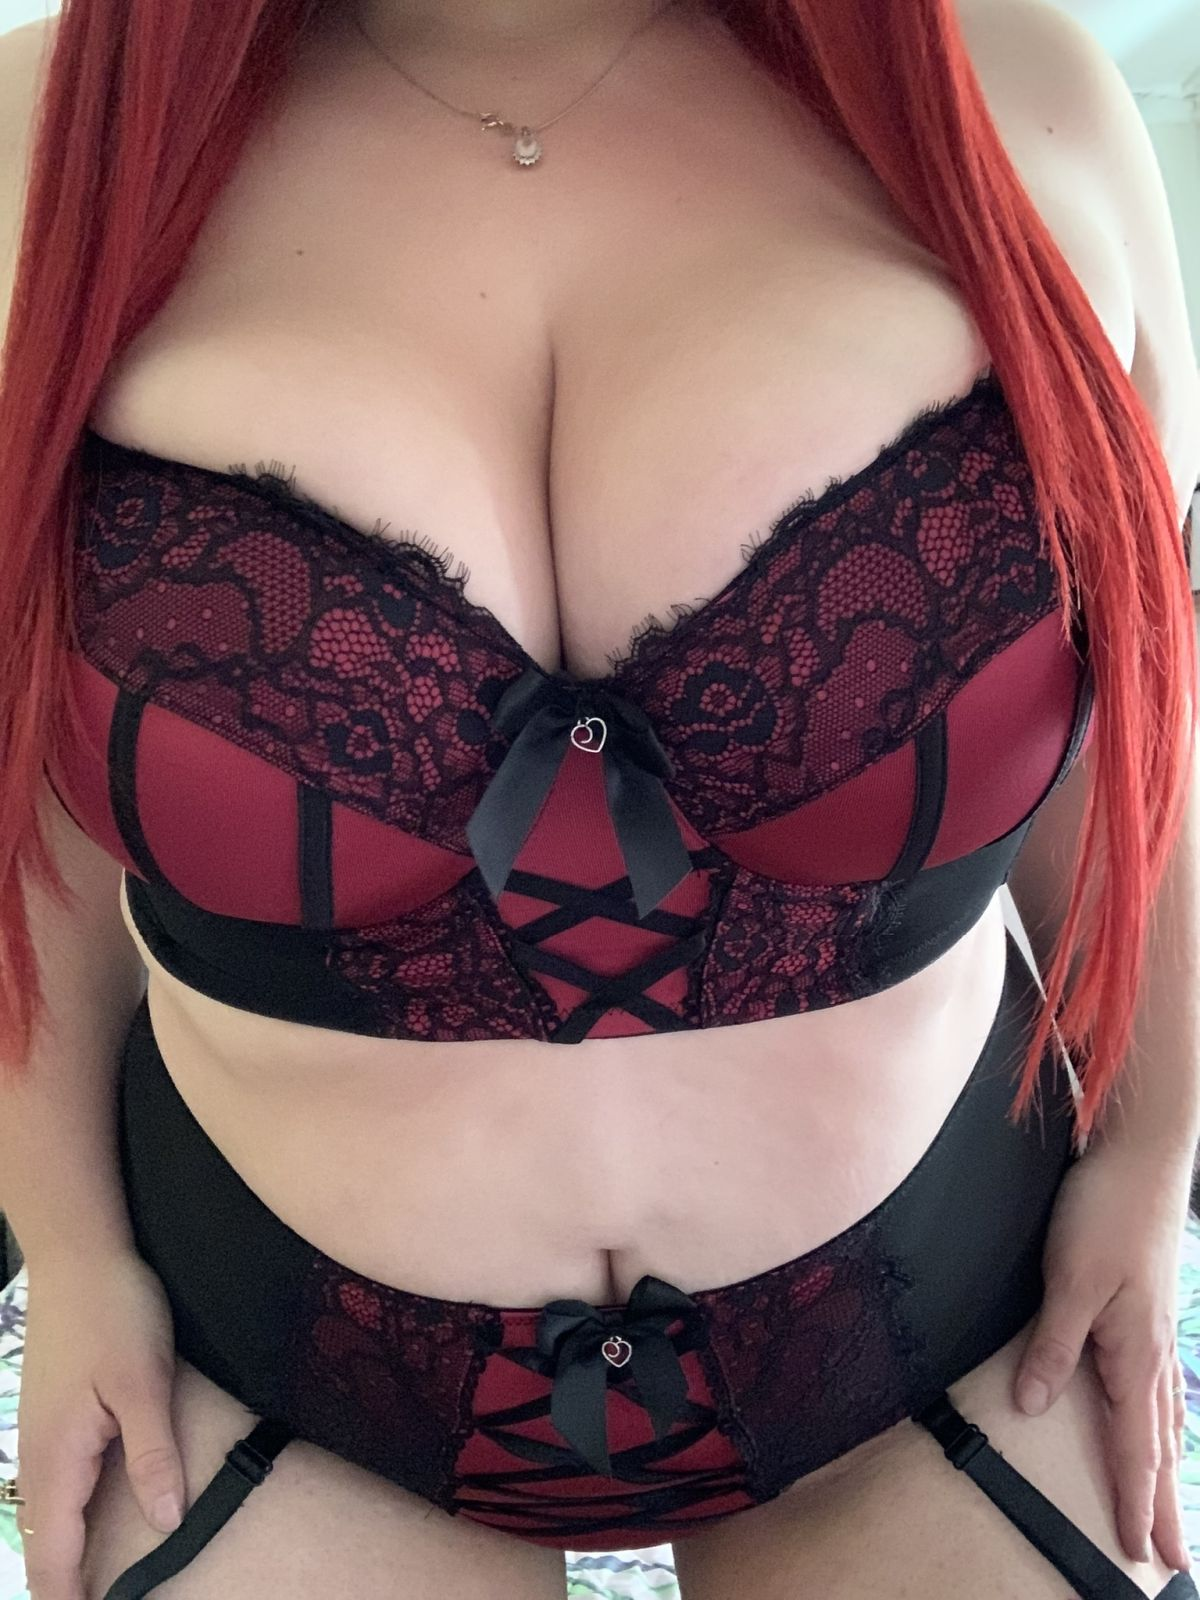 Red Ivy nudes onlyfans onlyfans leaked